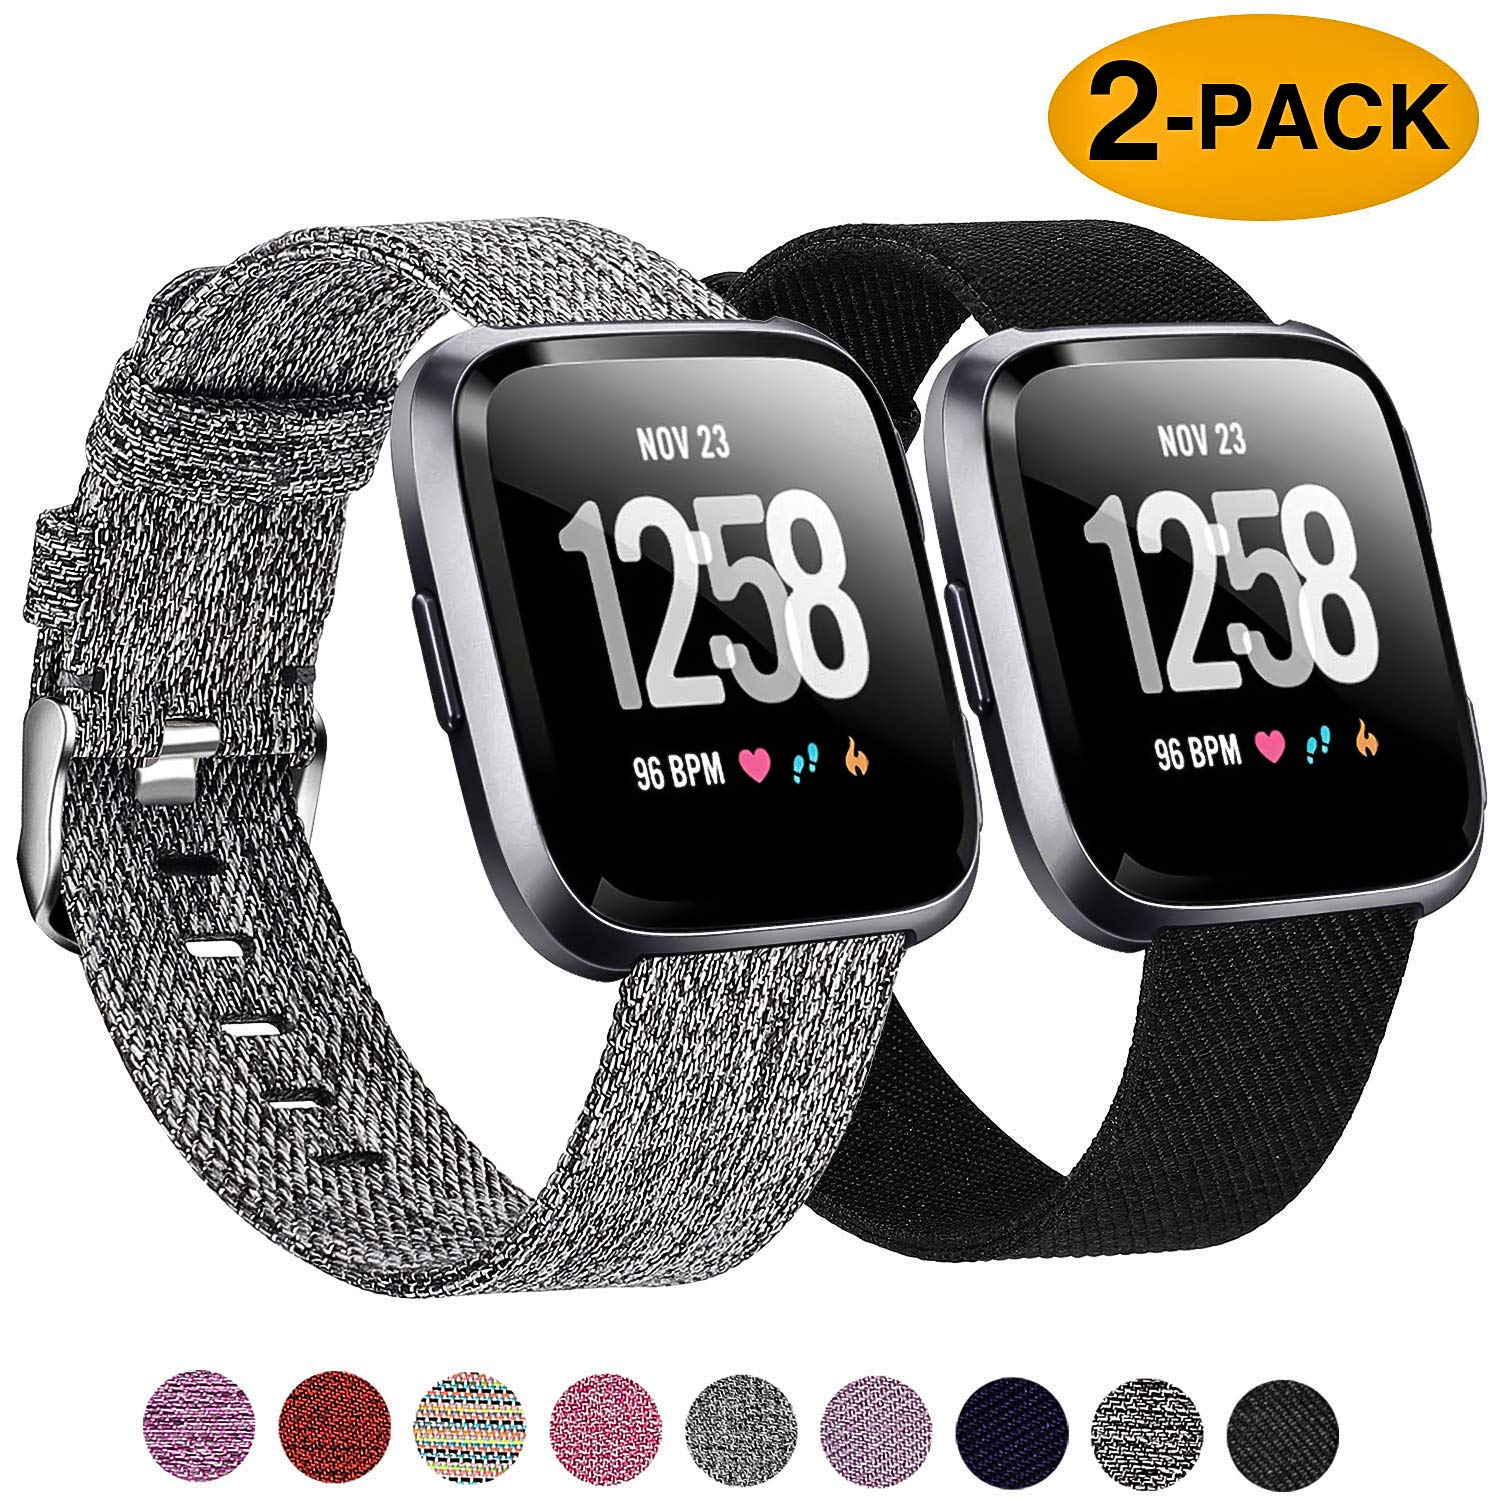 Welltin 2 Pack Bands Compatible with Fitbit Versa/Fitbit Versa 2 / Fitbit Versa Lite for Women Men, Breathable Woven Fabric Strap, Adjustable Replacement Wristband for Fitbit Versa Smart Watch by Welltin